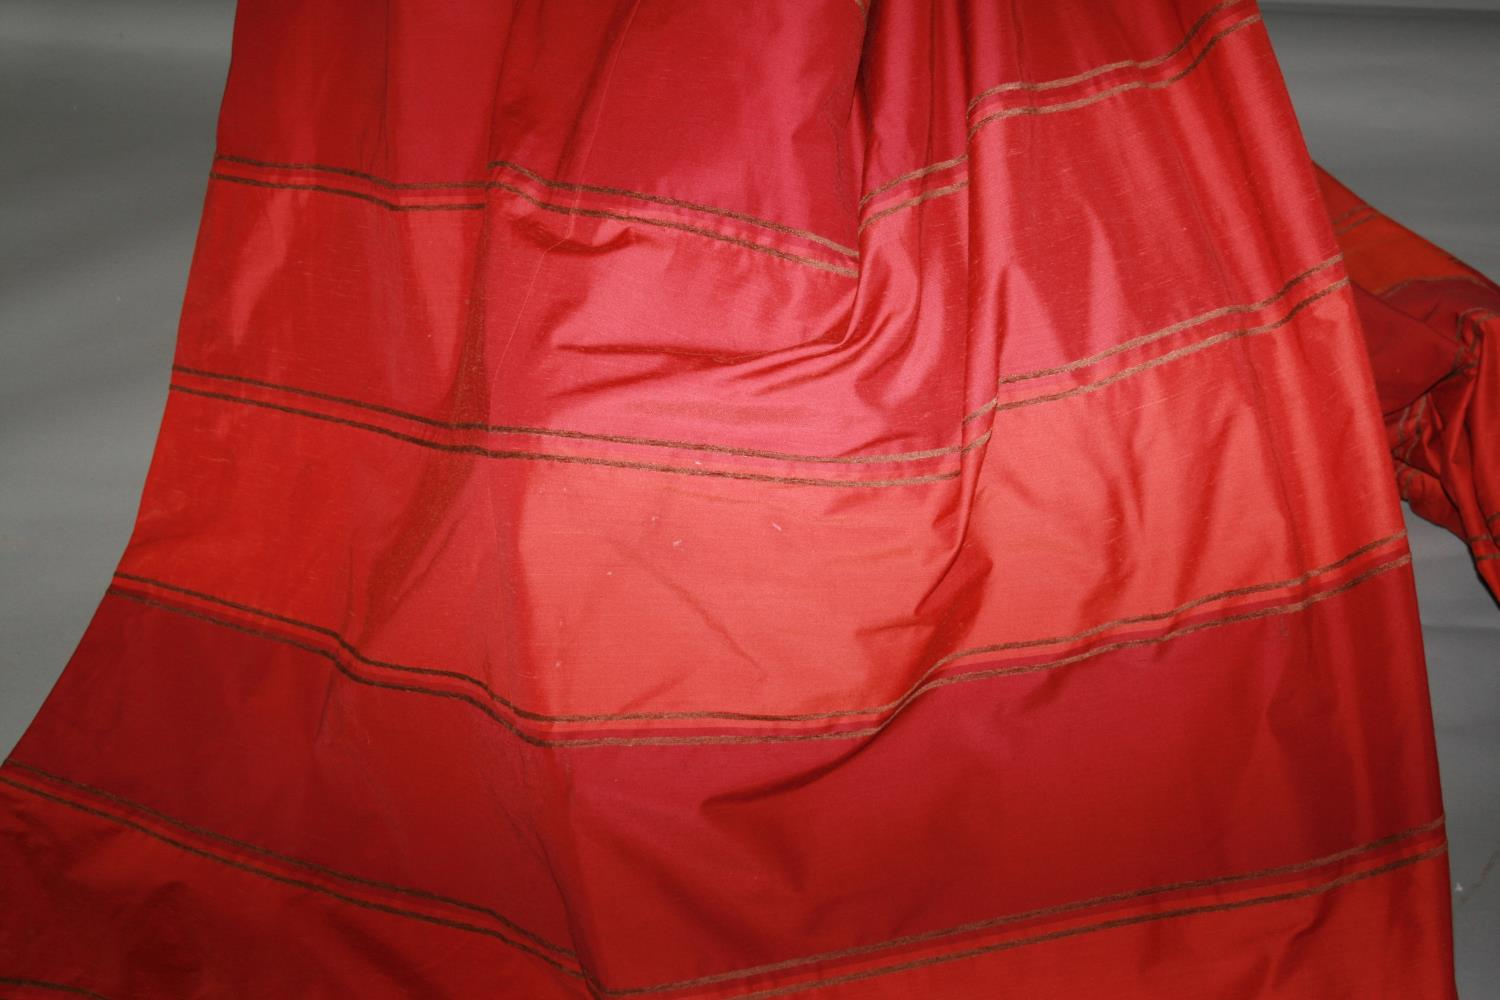 Two pairs of red curtain, striped pattern 110W x 210H approx. each. - Image 2 of 2